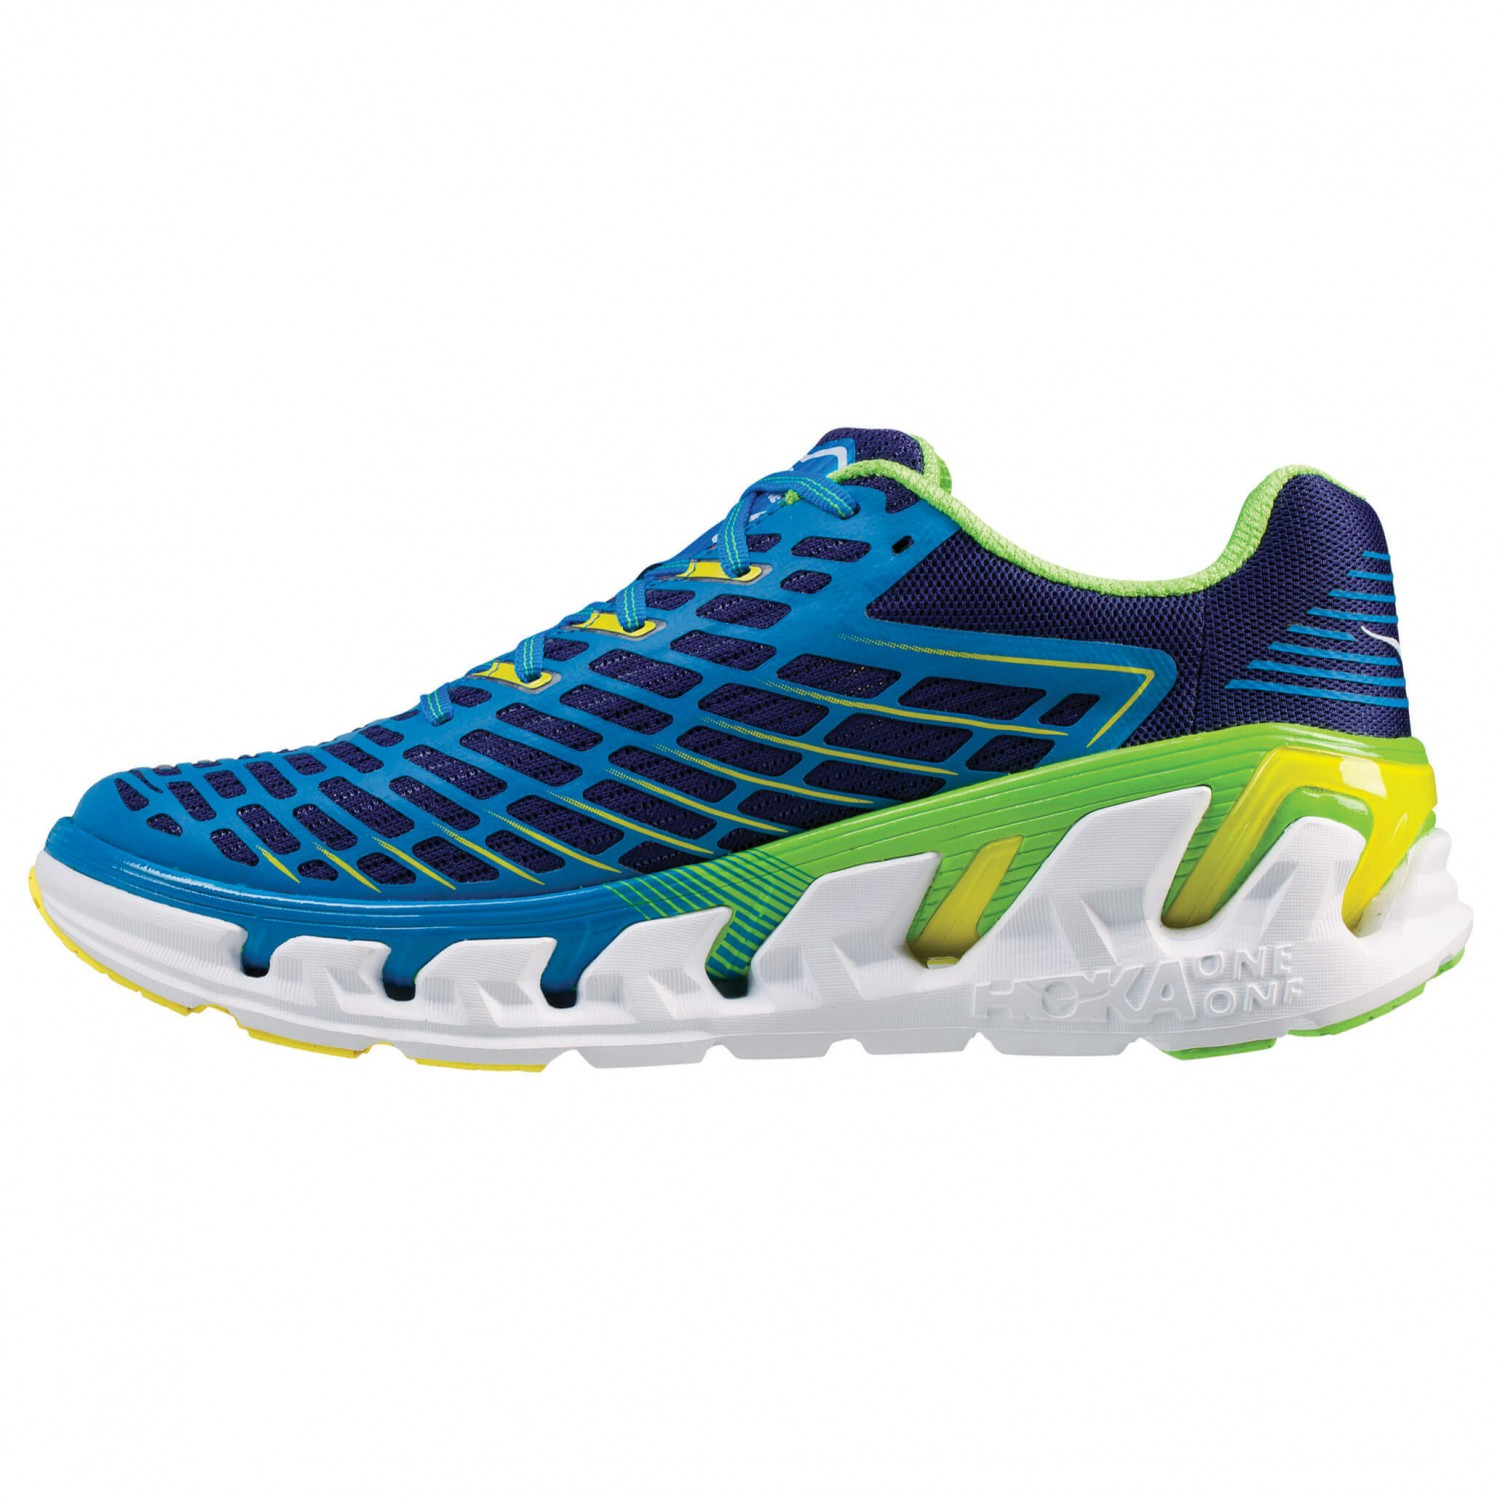 hoka one one vanquish 3 running shoes mens buy online